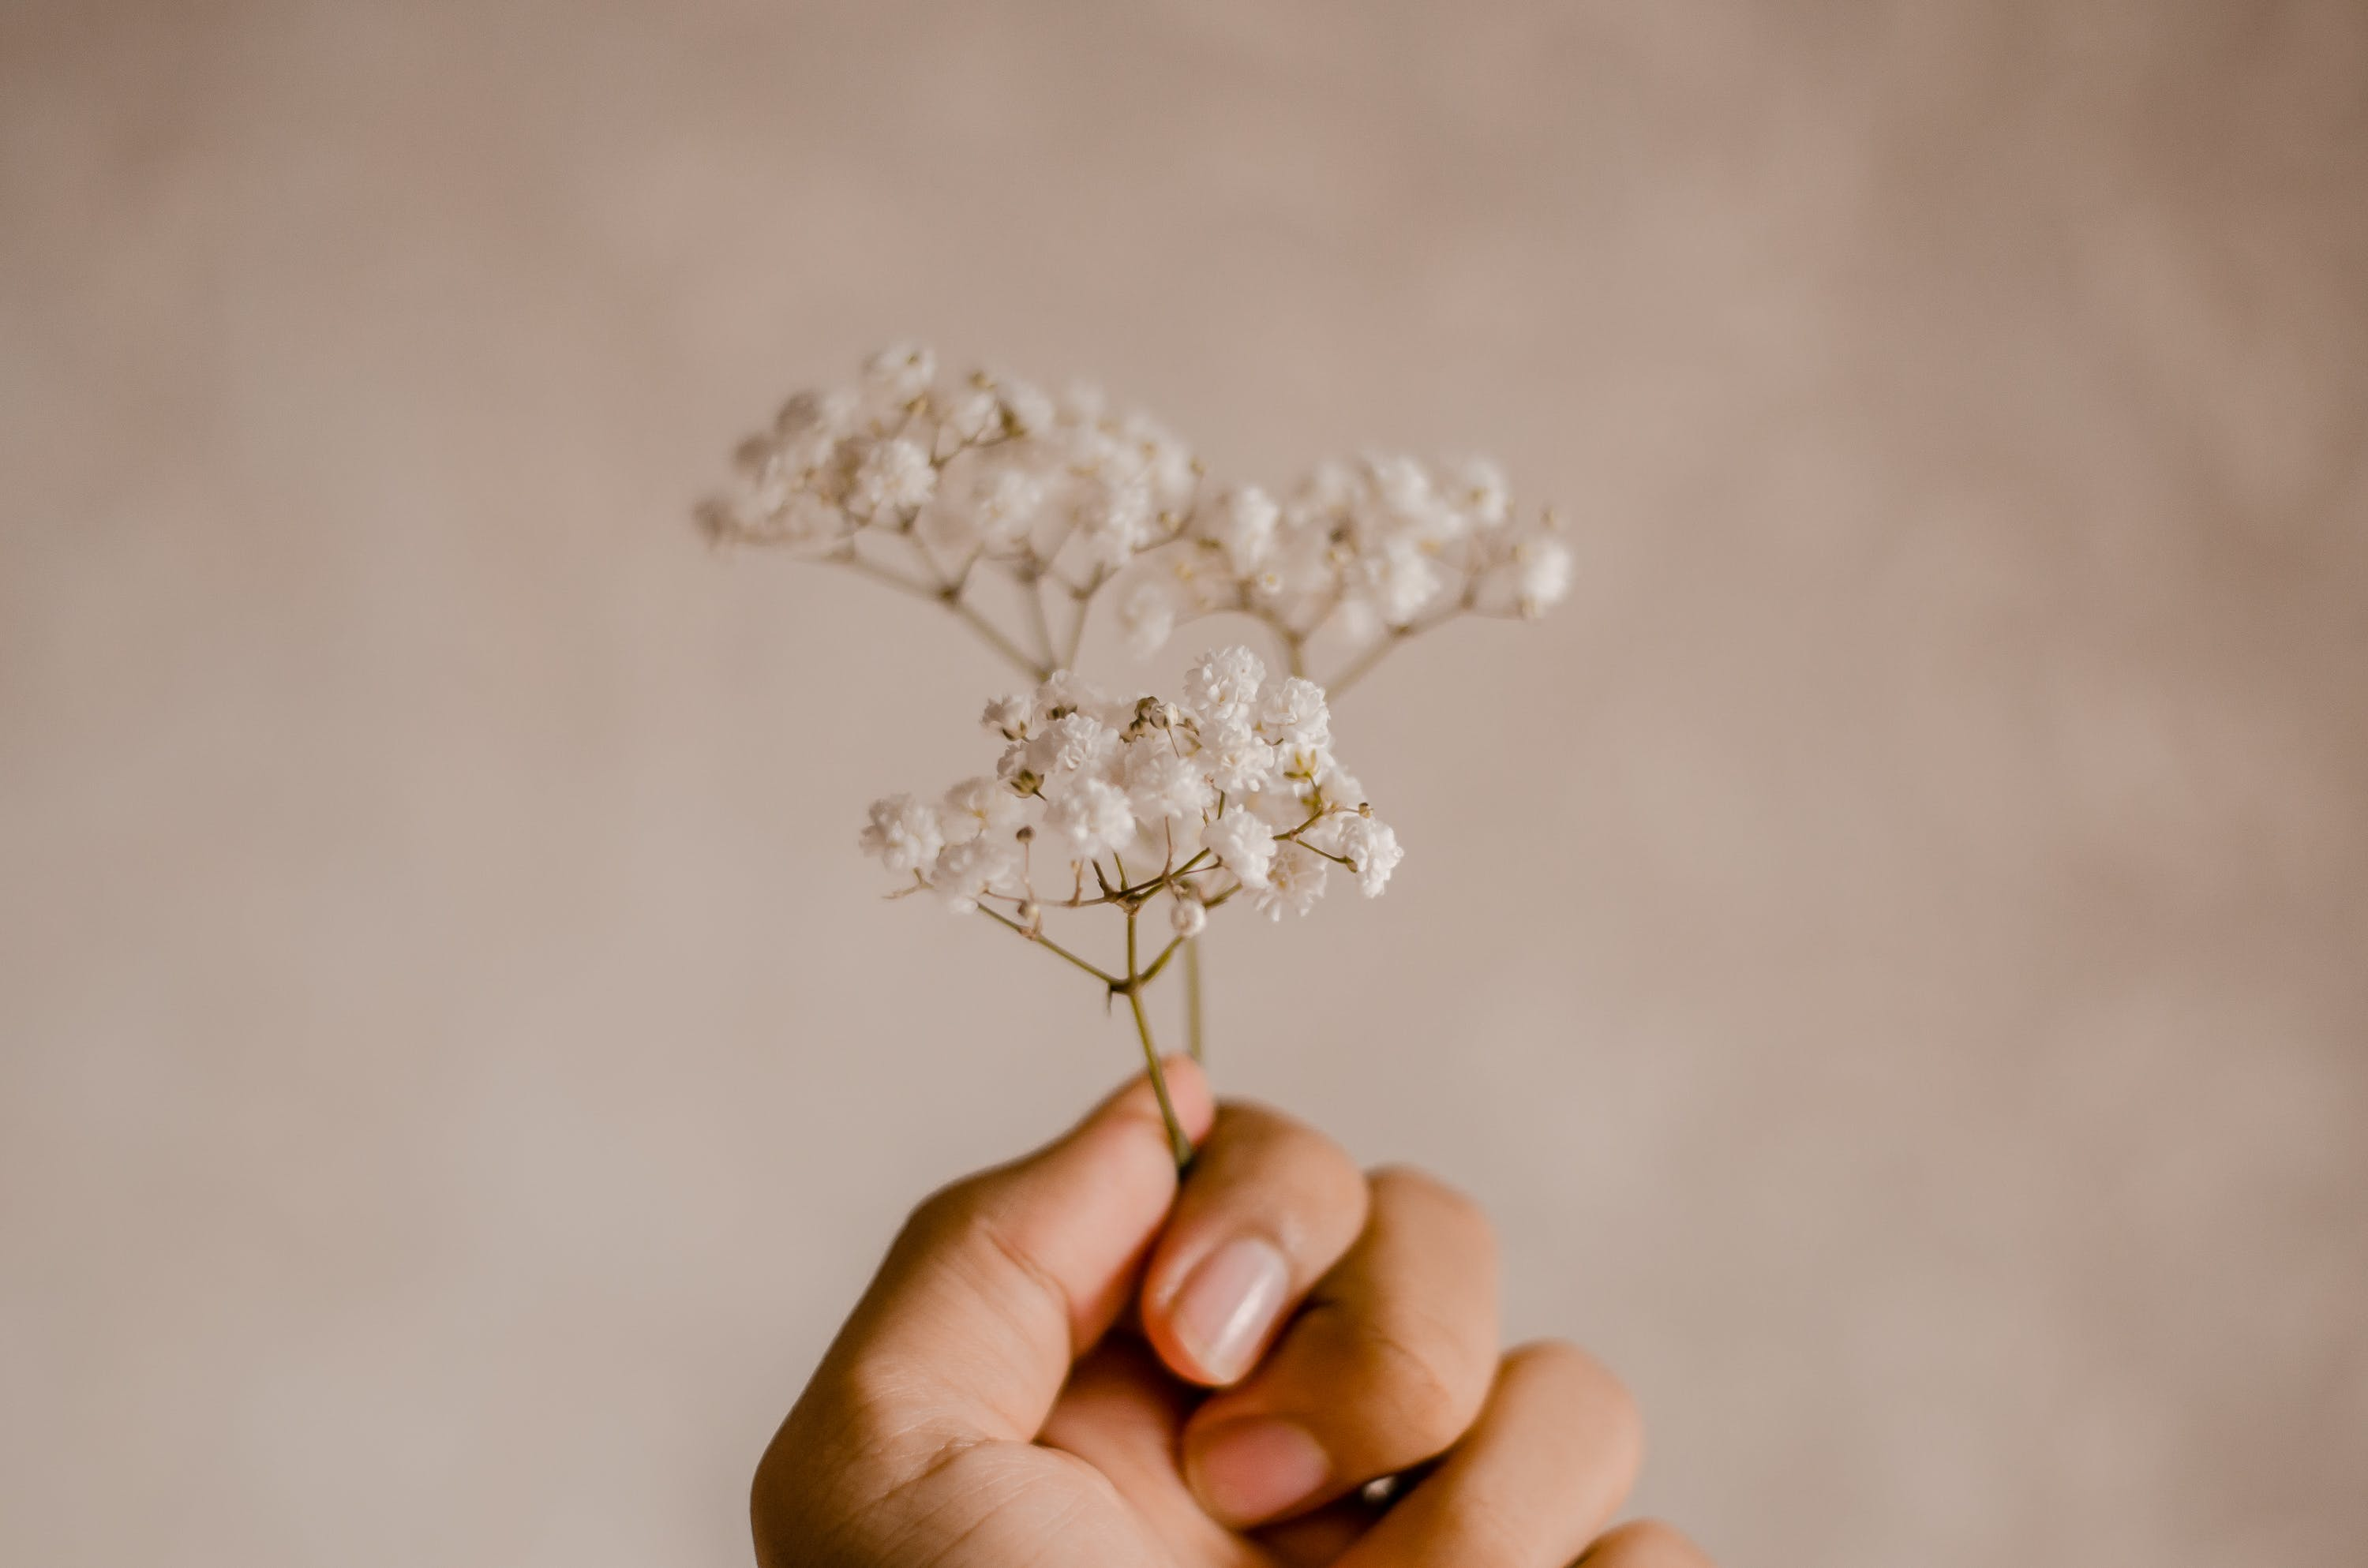 Person Holding White Encrusted Flowers